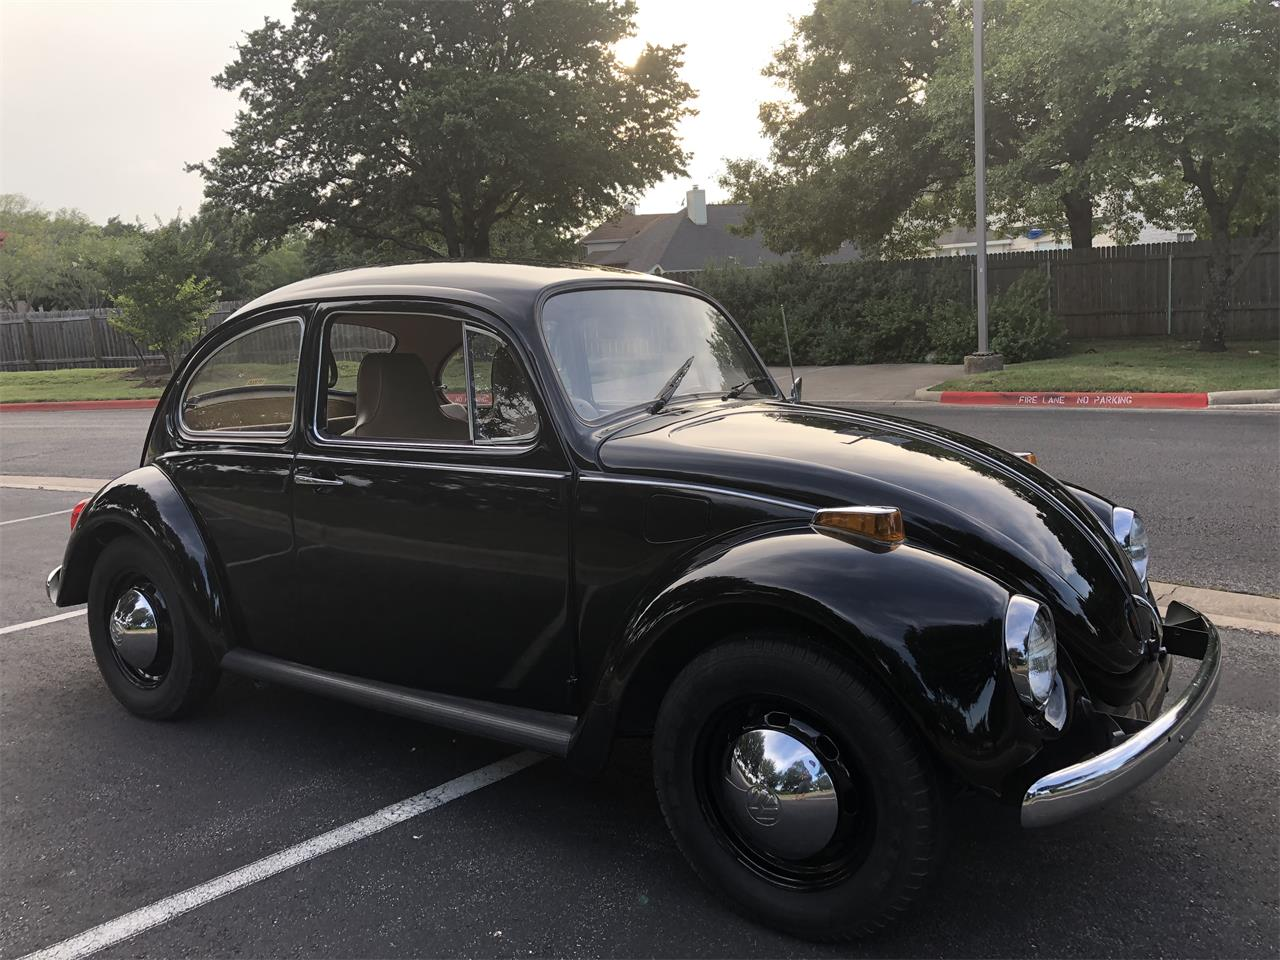 Large Picture of Classic '72 Volkswagen Beetle - $13,500.00 Offered by a Private Seller - QOBX